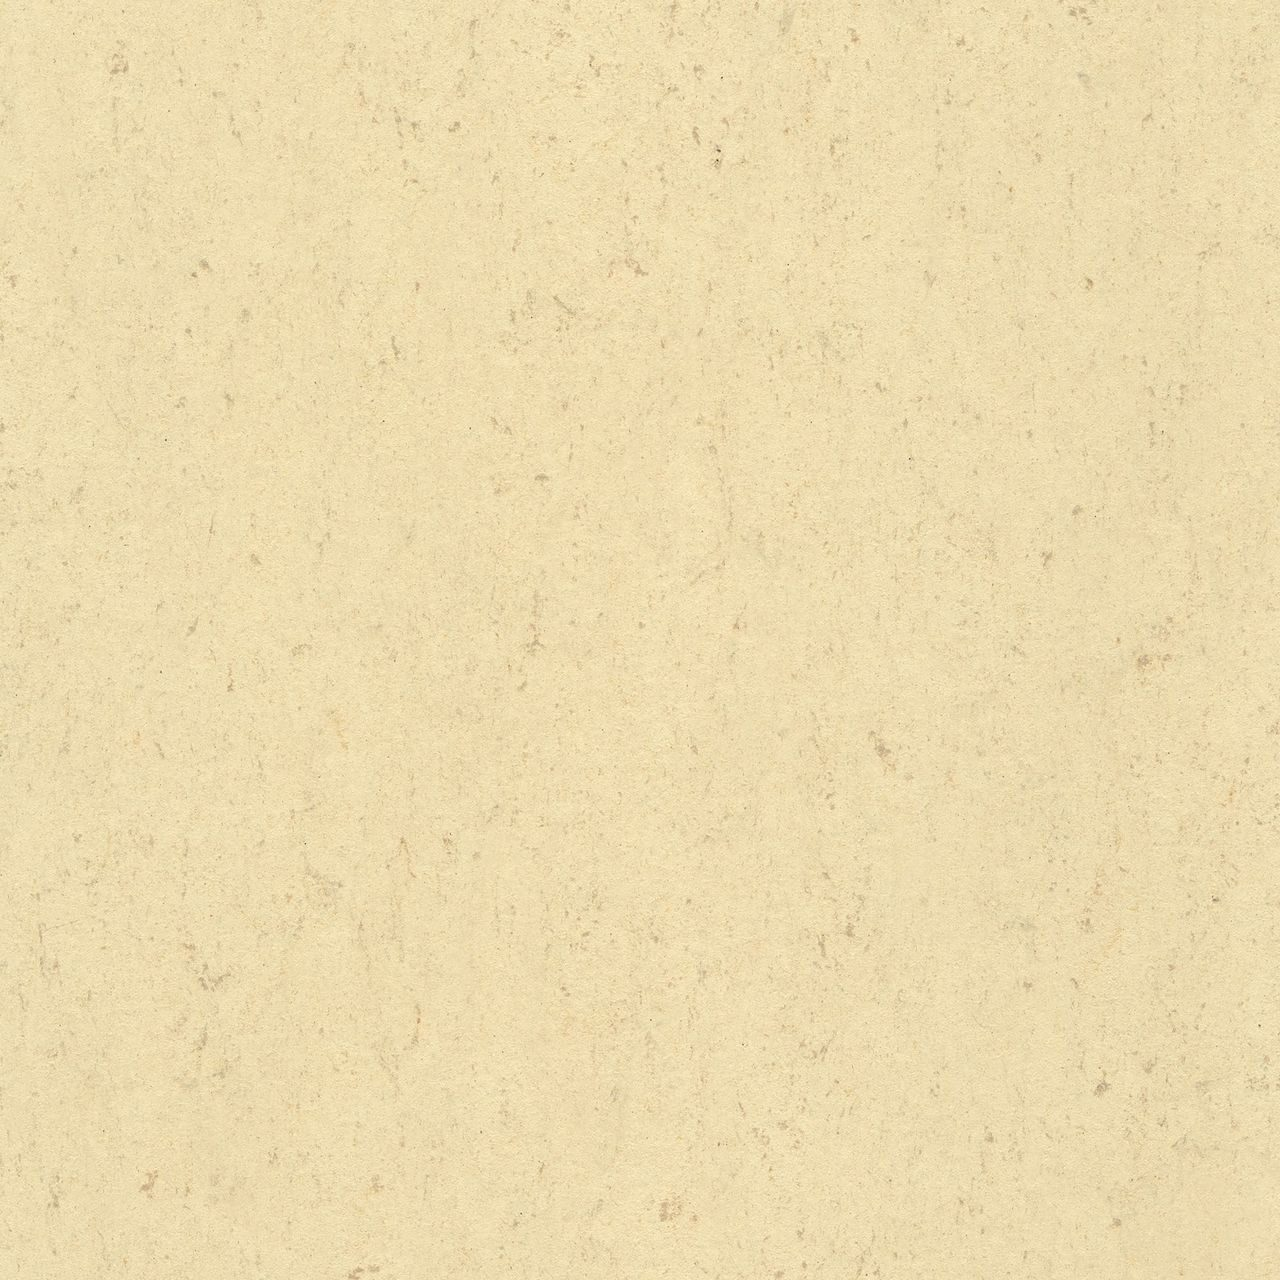 Colorette LPX 131-140 light sand beige